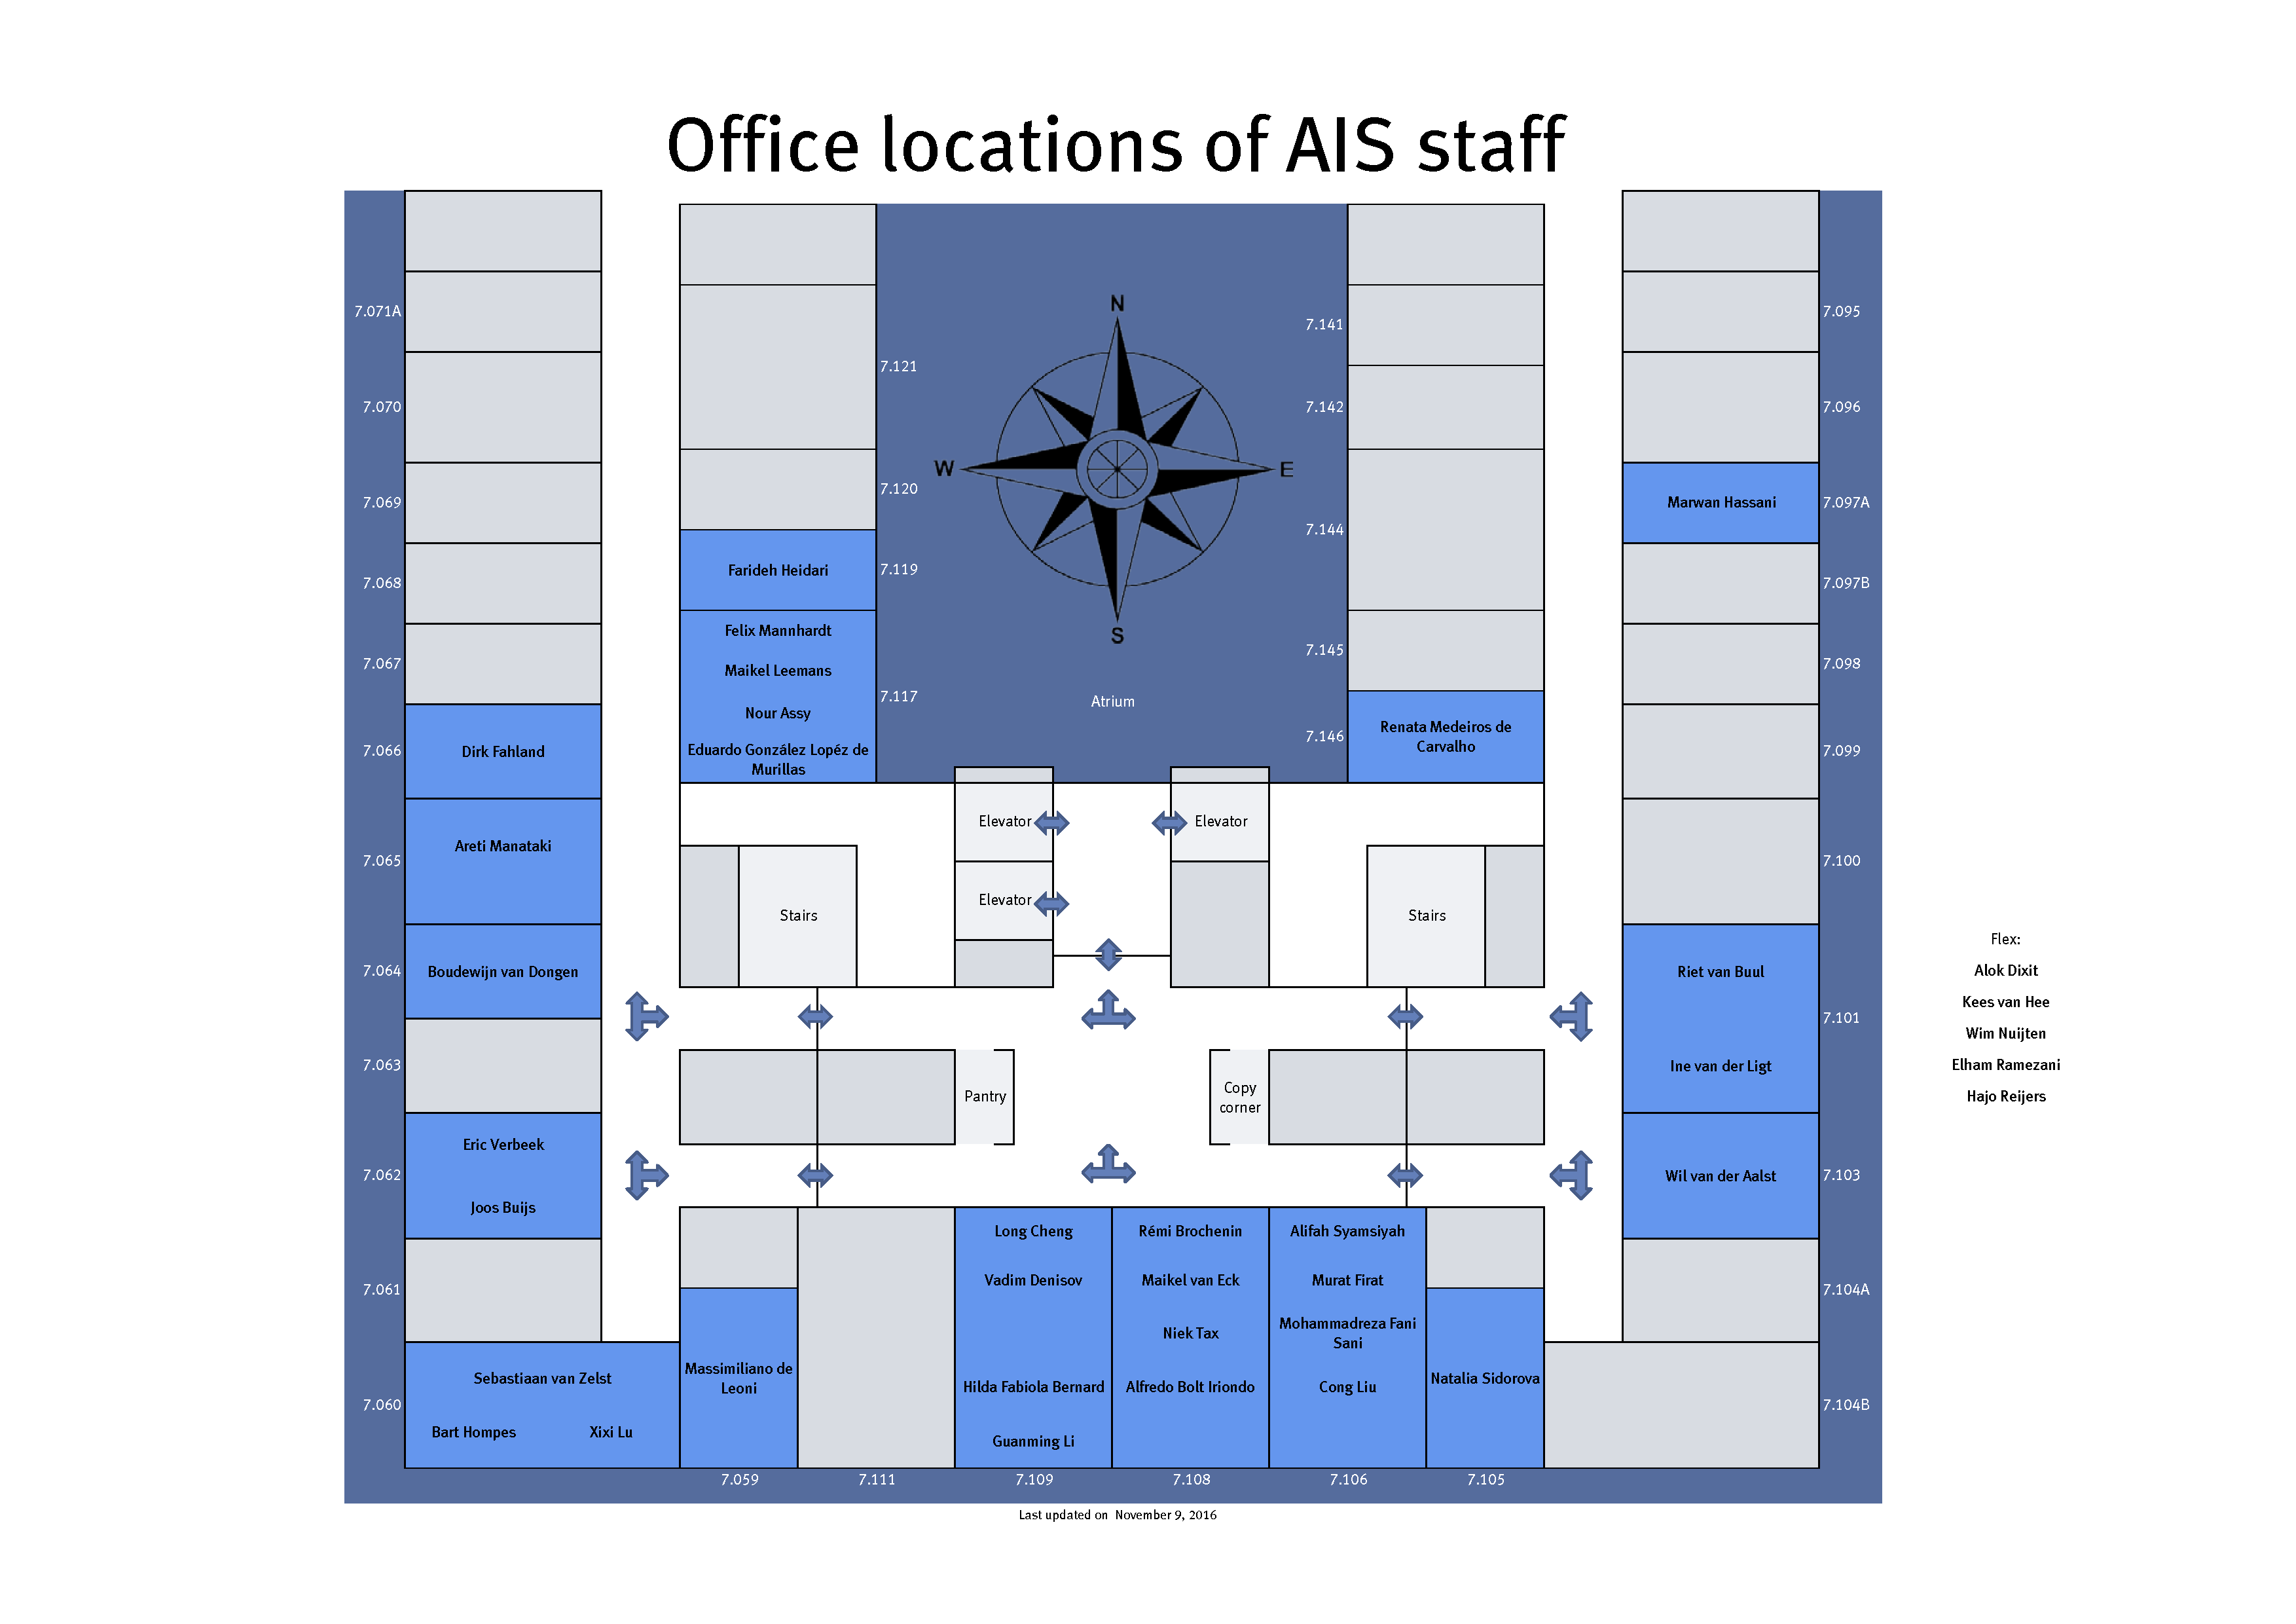 images:offices20161109.png